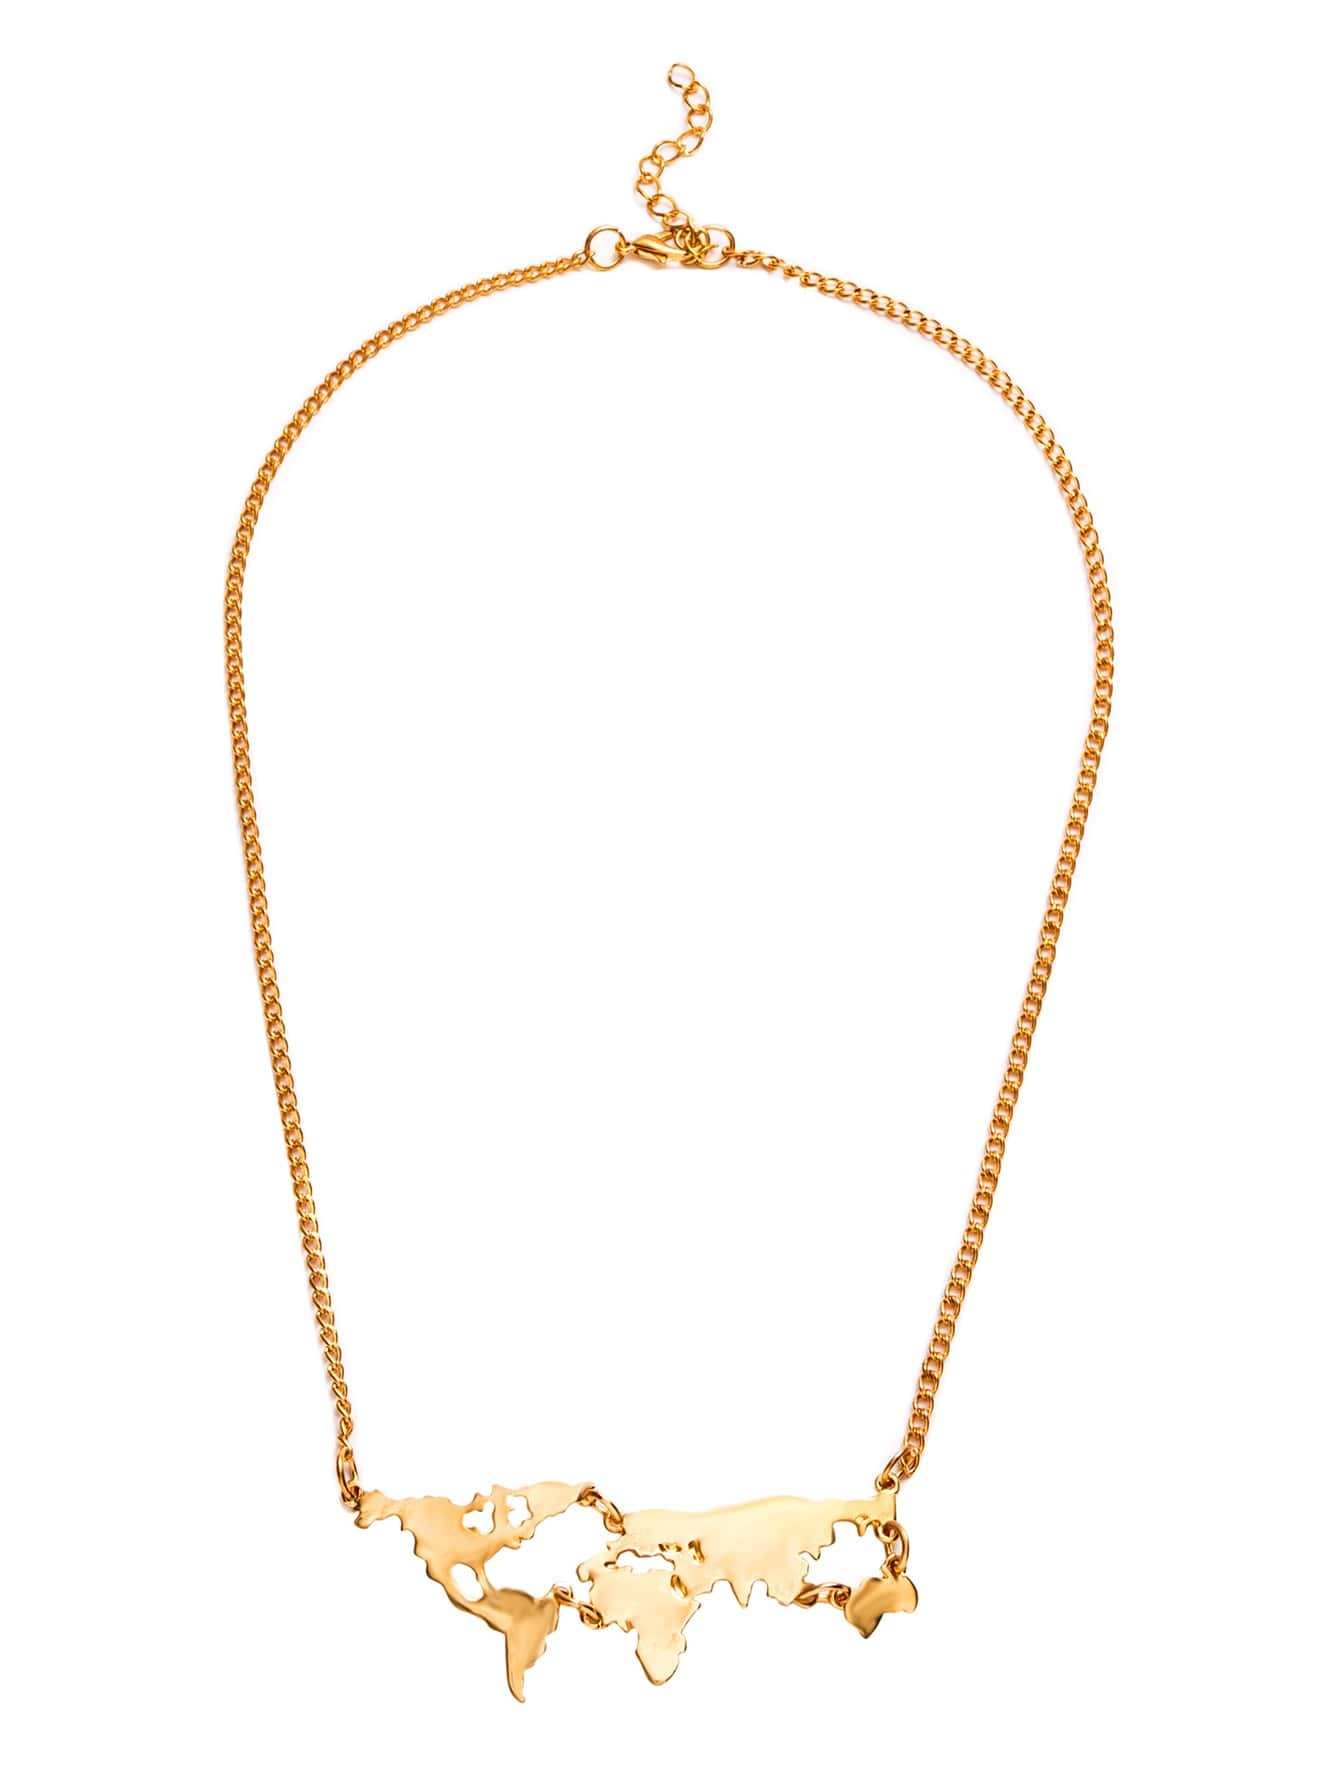 Gold Personalized World Map Statement Necklace